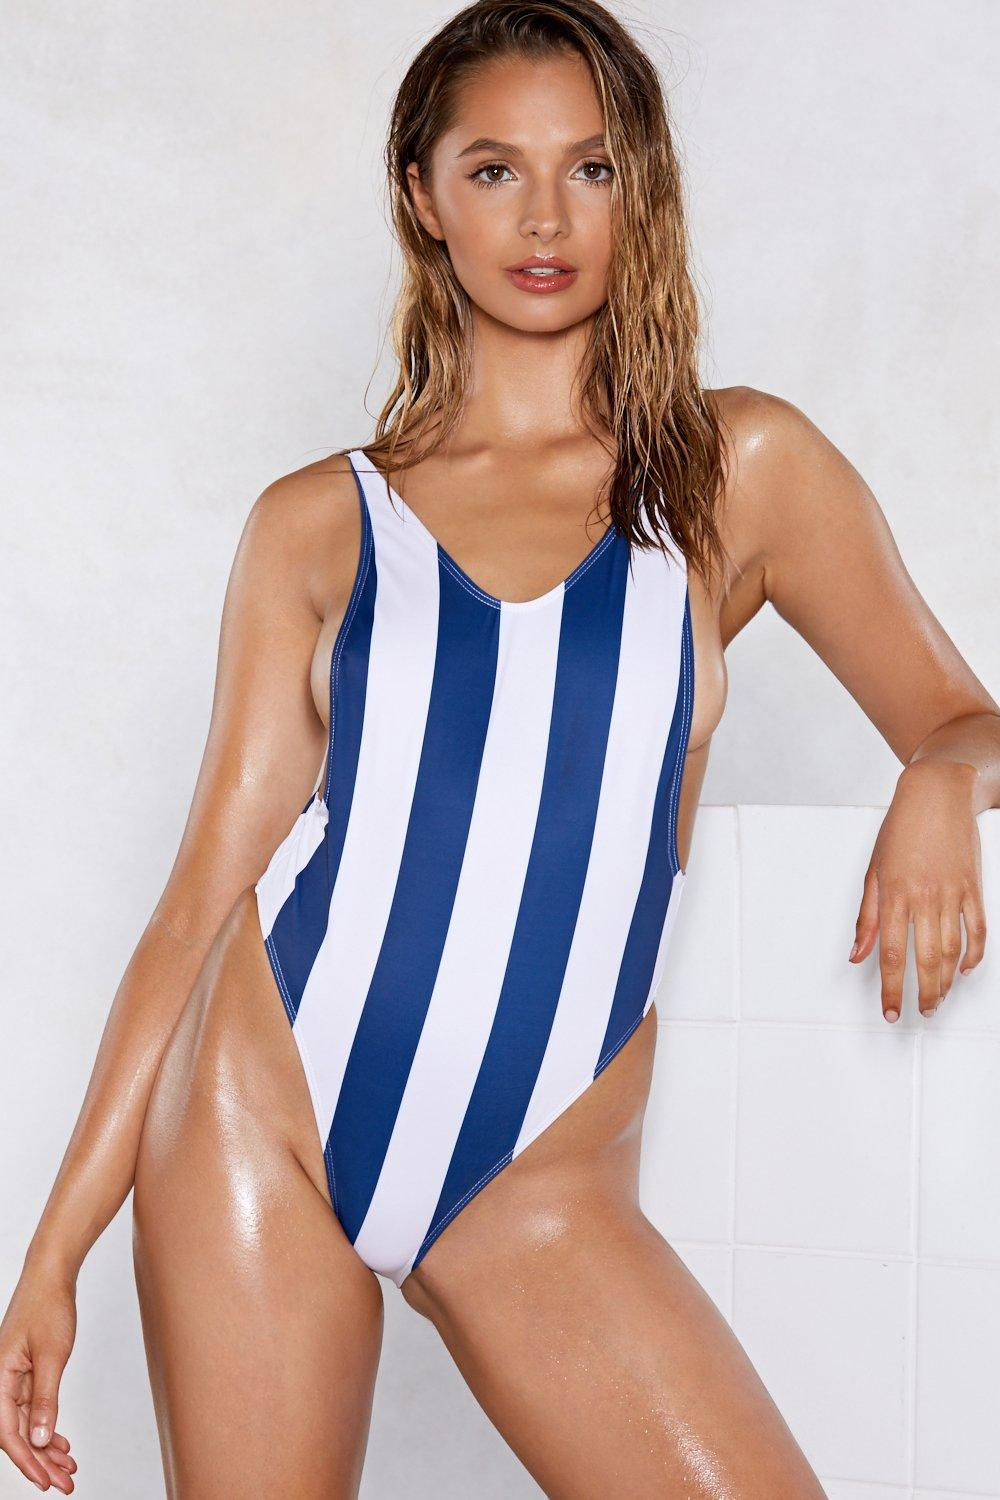 f9bb0ef7b50b8 Nasty Gal Alina Striped Swimsuit   Shop Clothes at Nasty Gal!